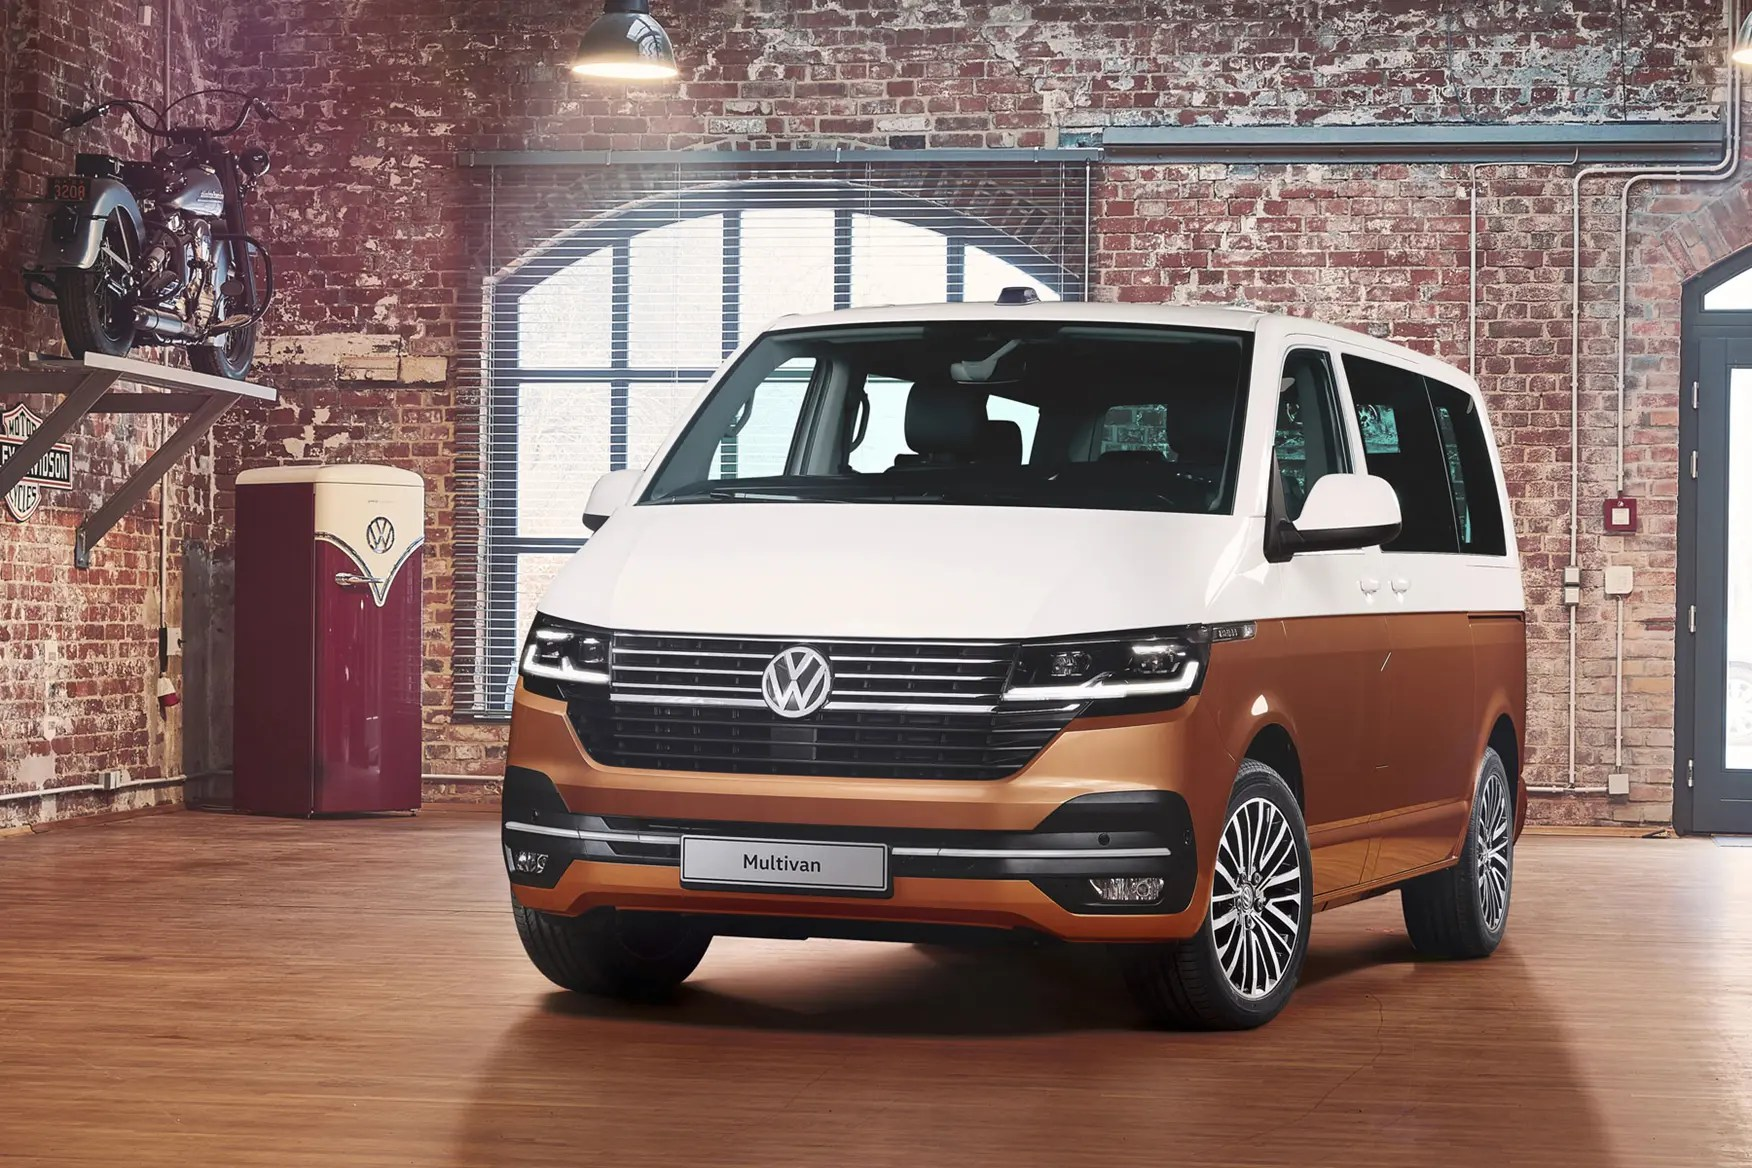 T5 Interieur Volkswagen Transporter T6 1 Officially Revealed Full Details And